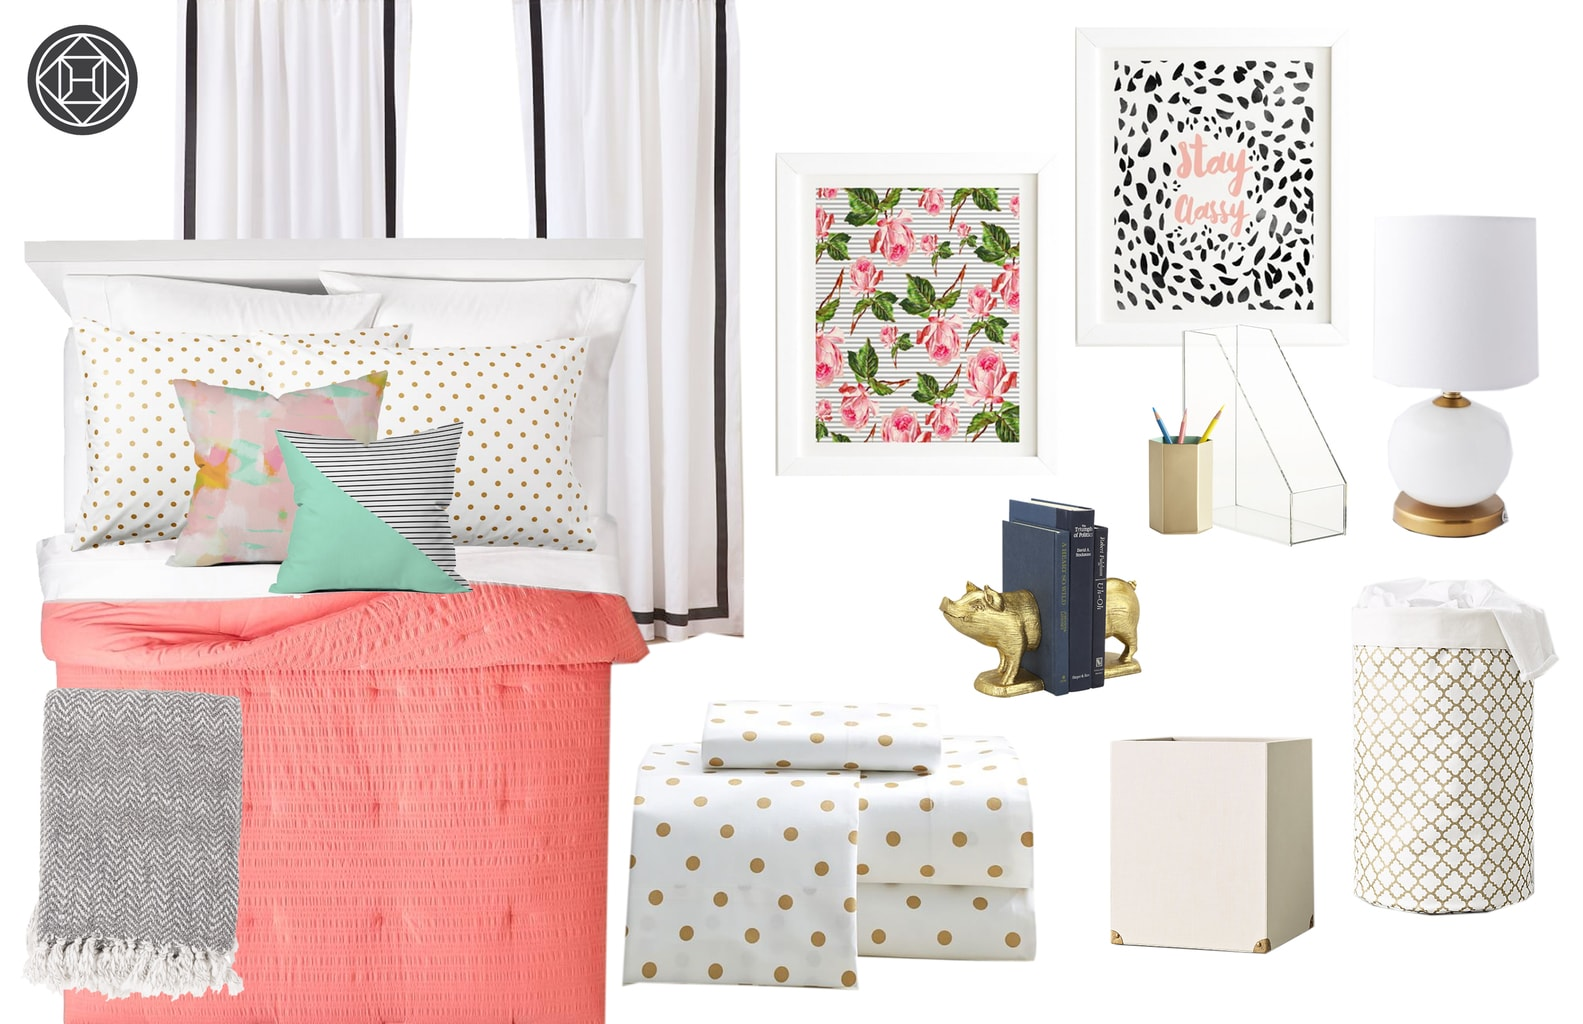 Havenly dorm room decor - social butterfly